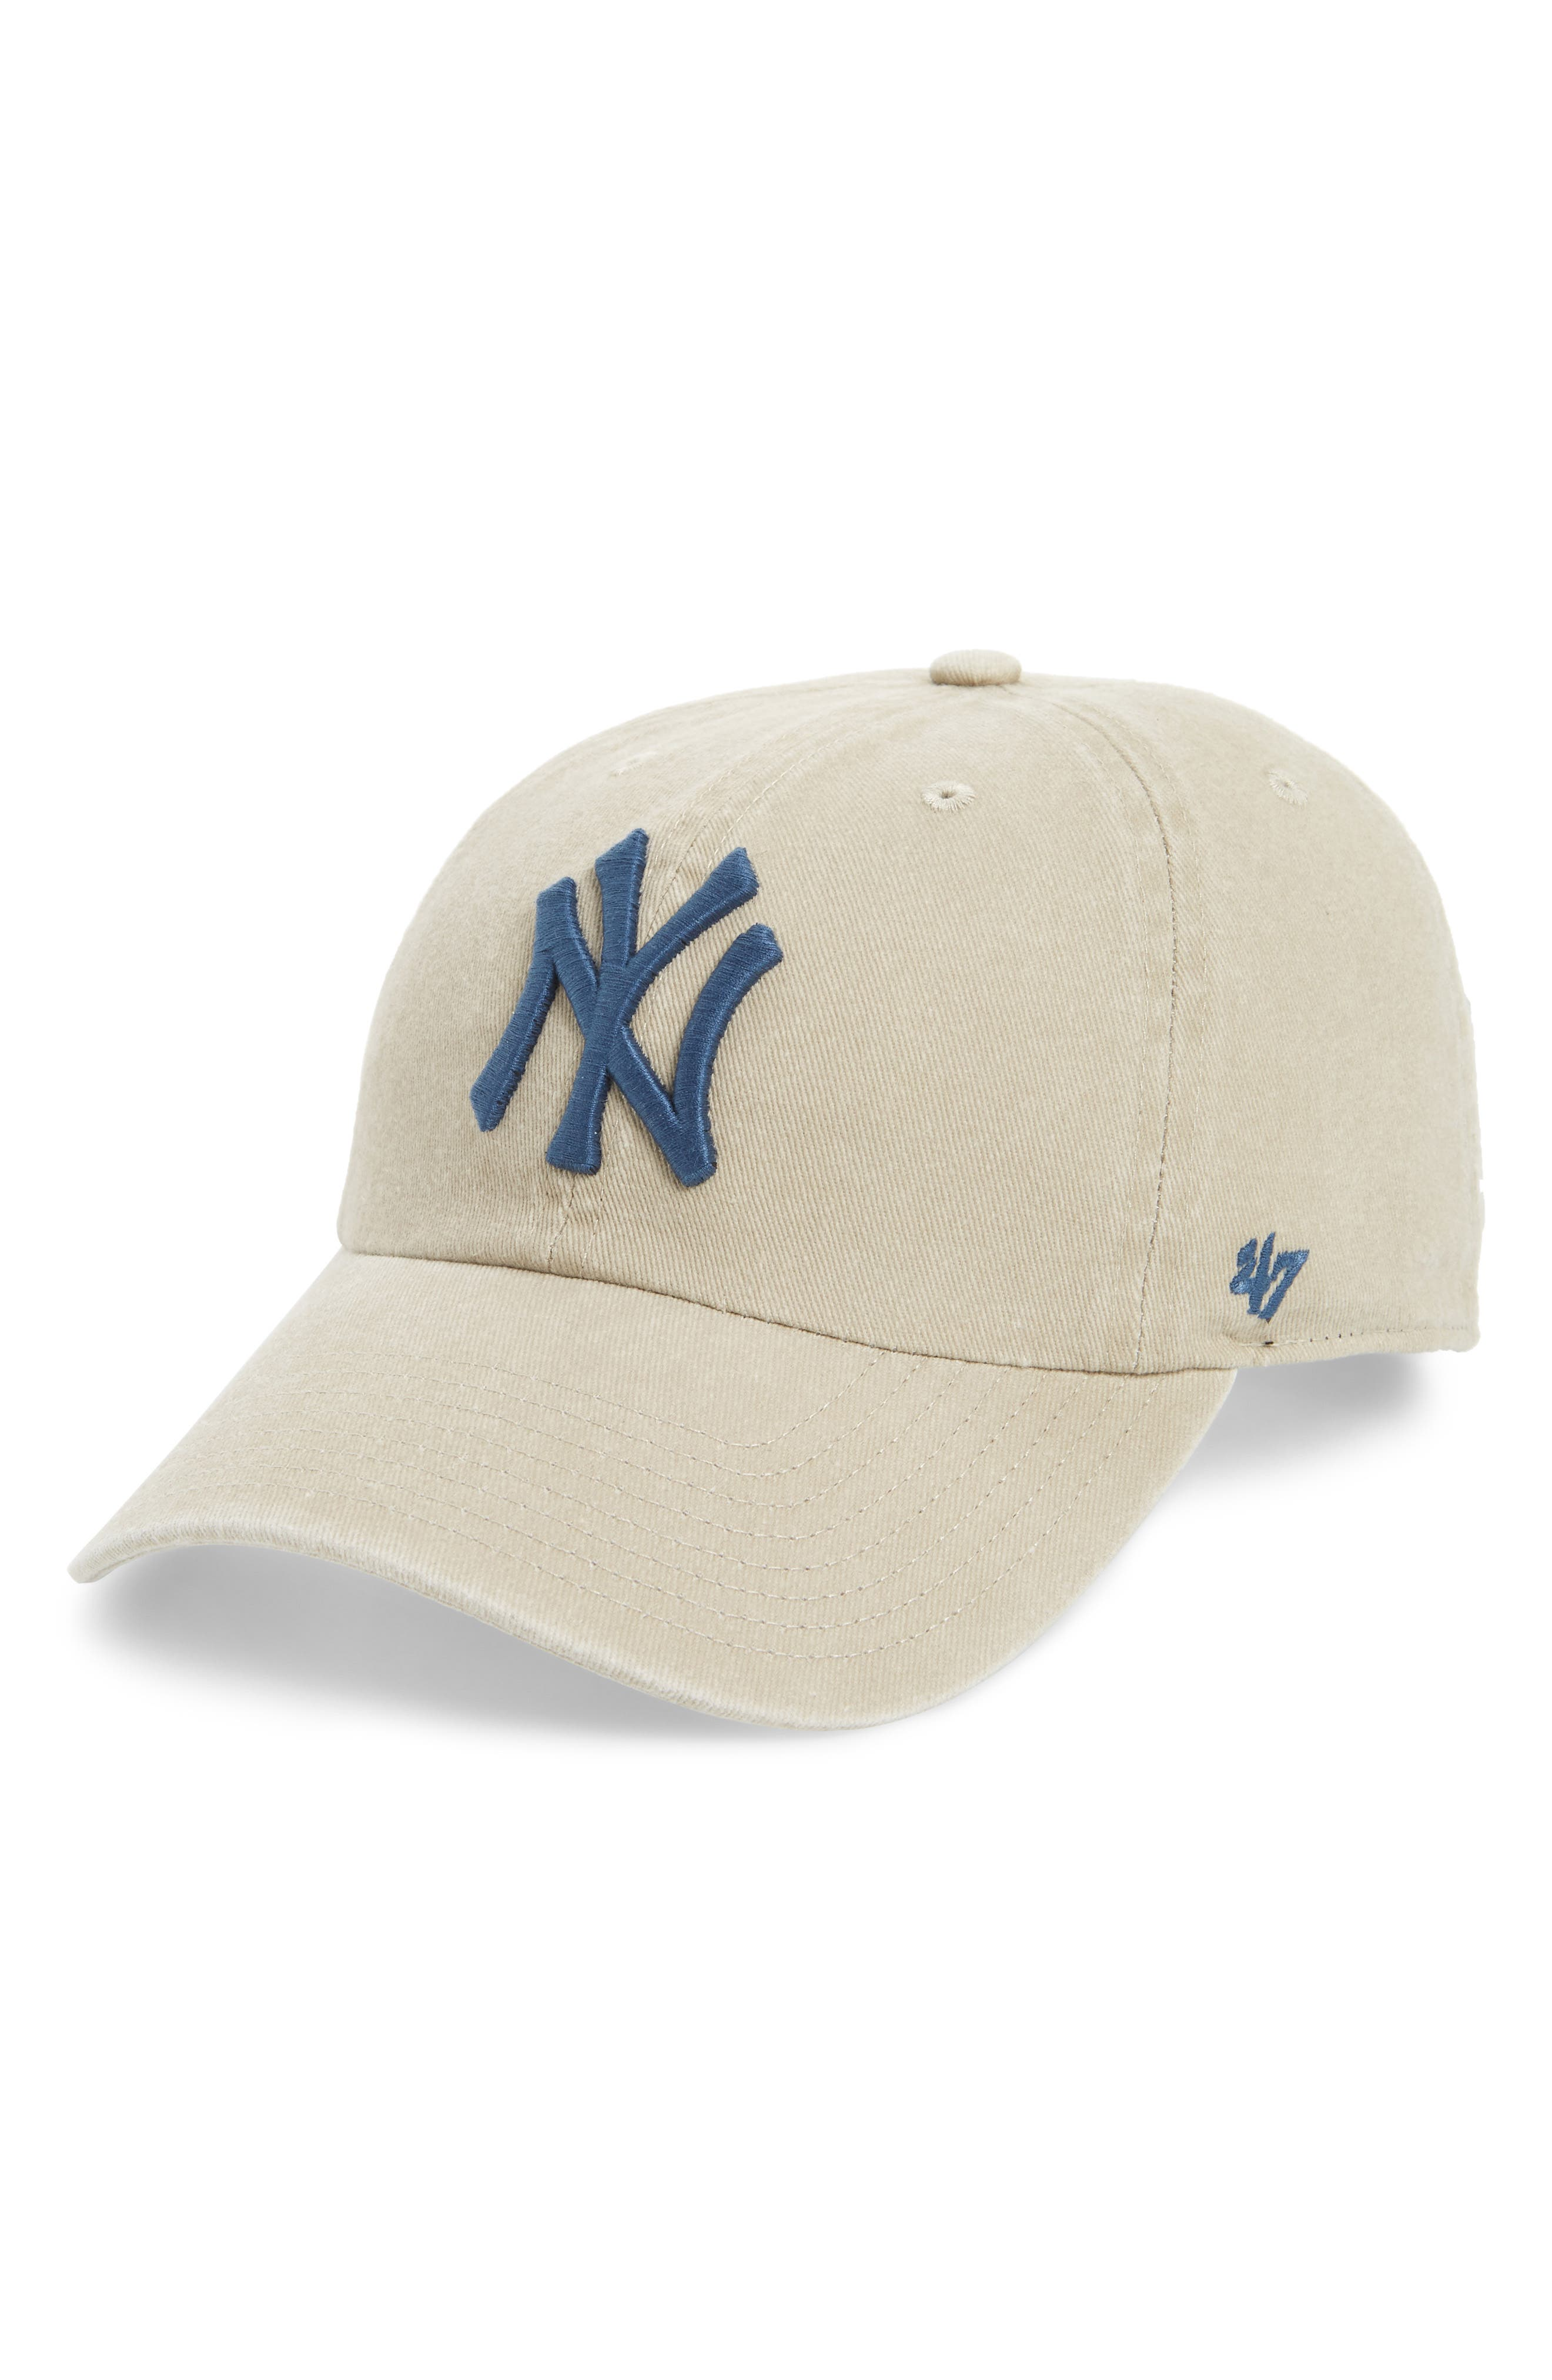 '47 Portsmouth Clean Up New York Yankees Baseball Cap